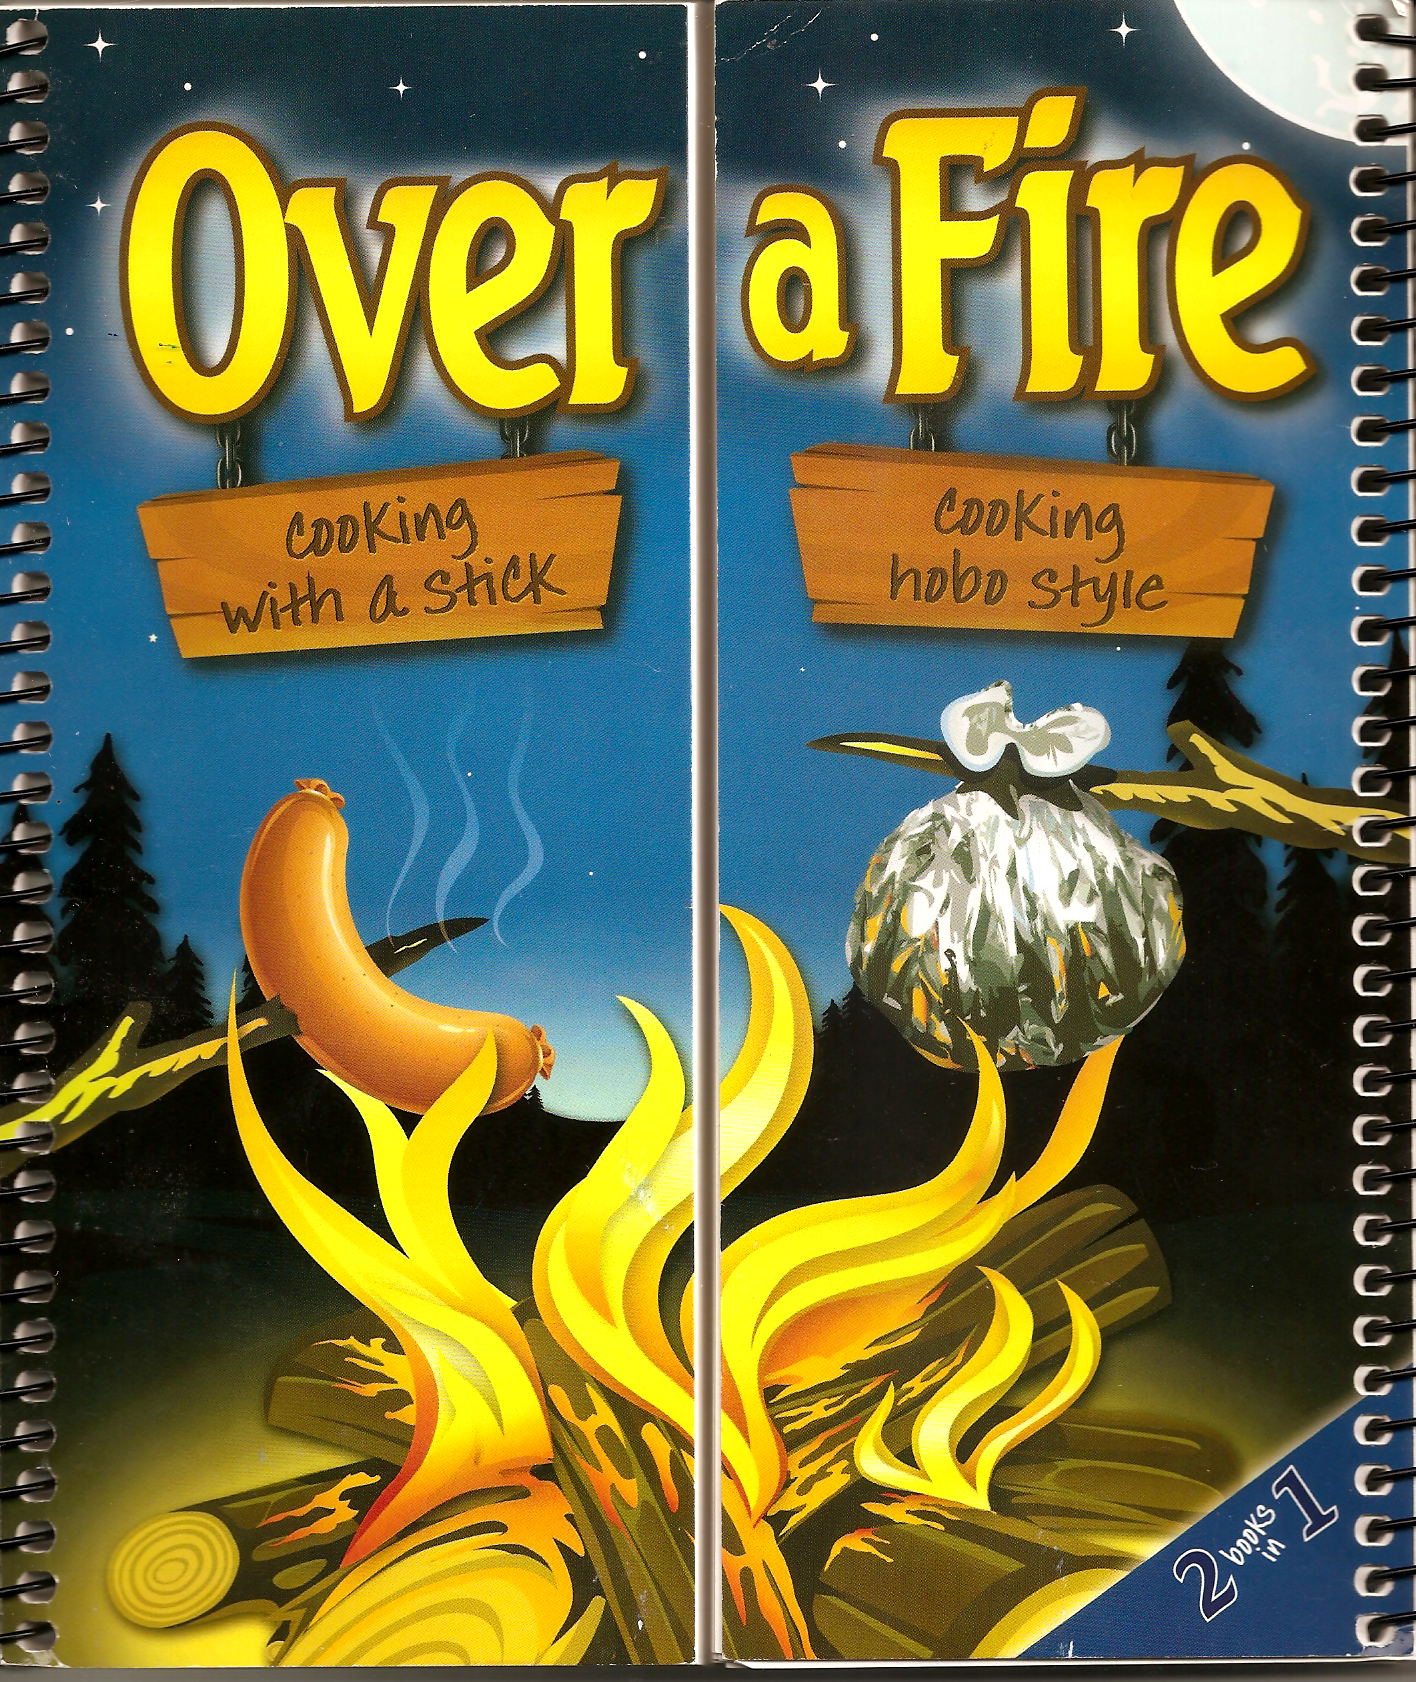 over_a_fire